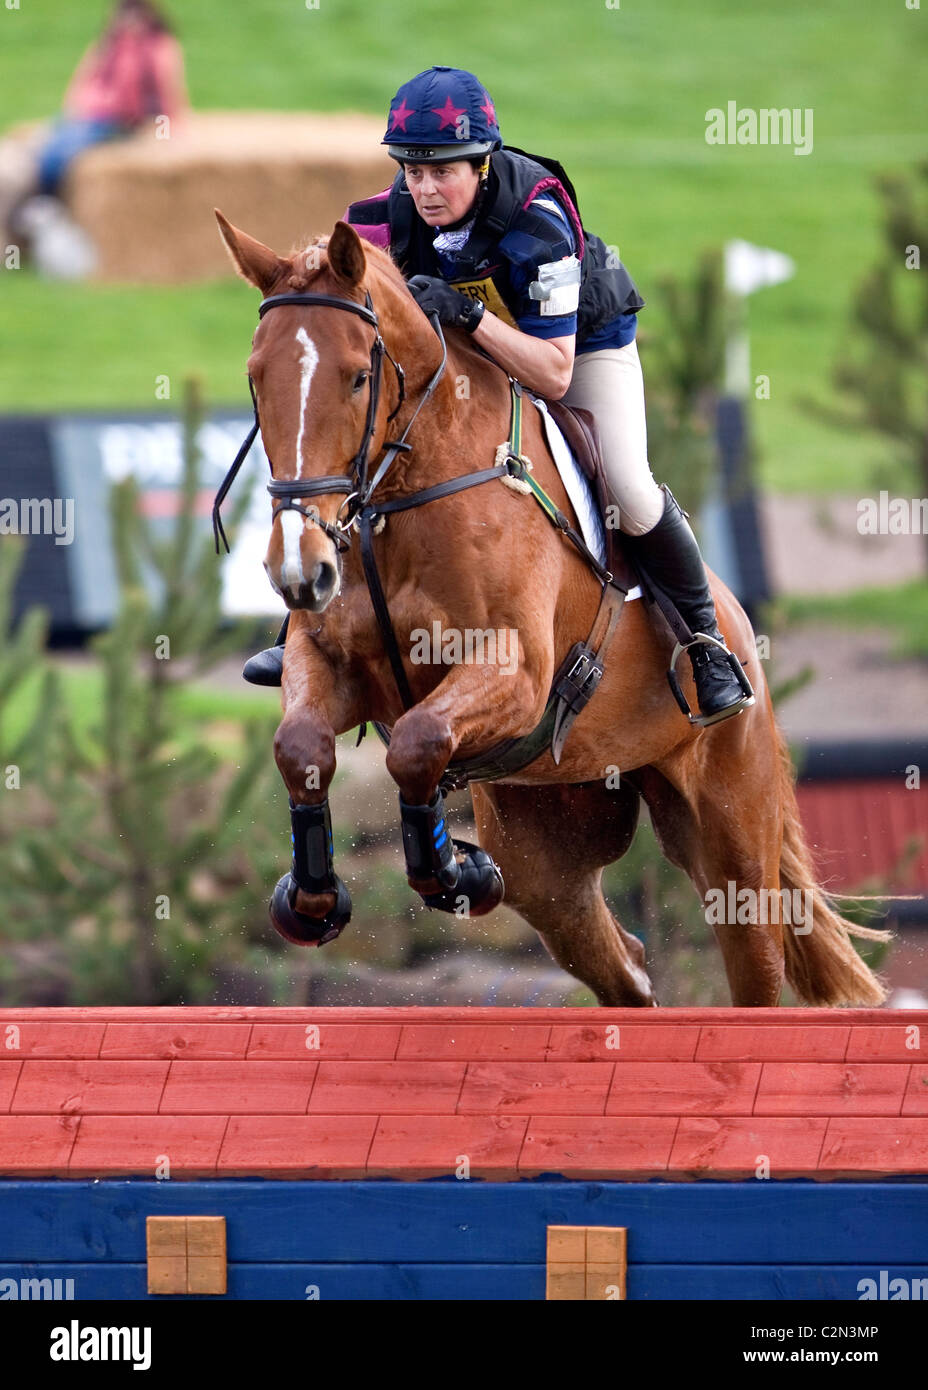 Cross Country Eventing - Stock Image